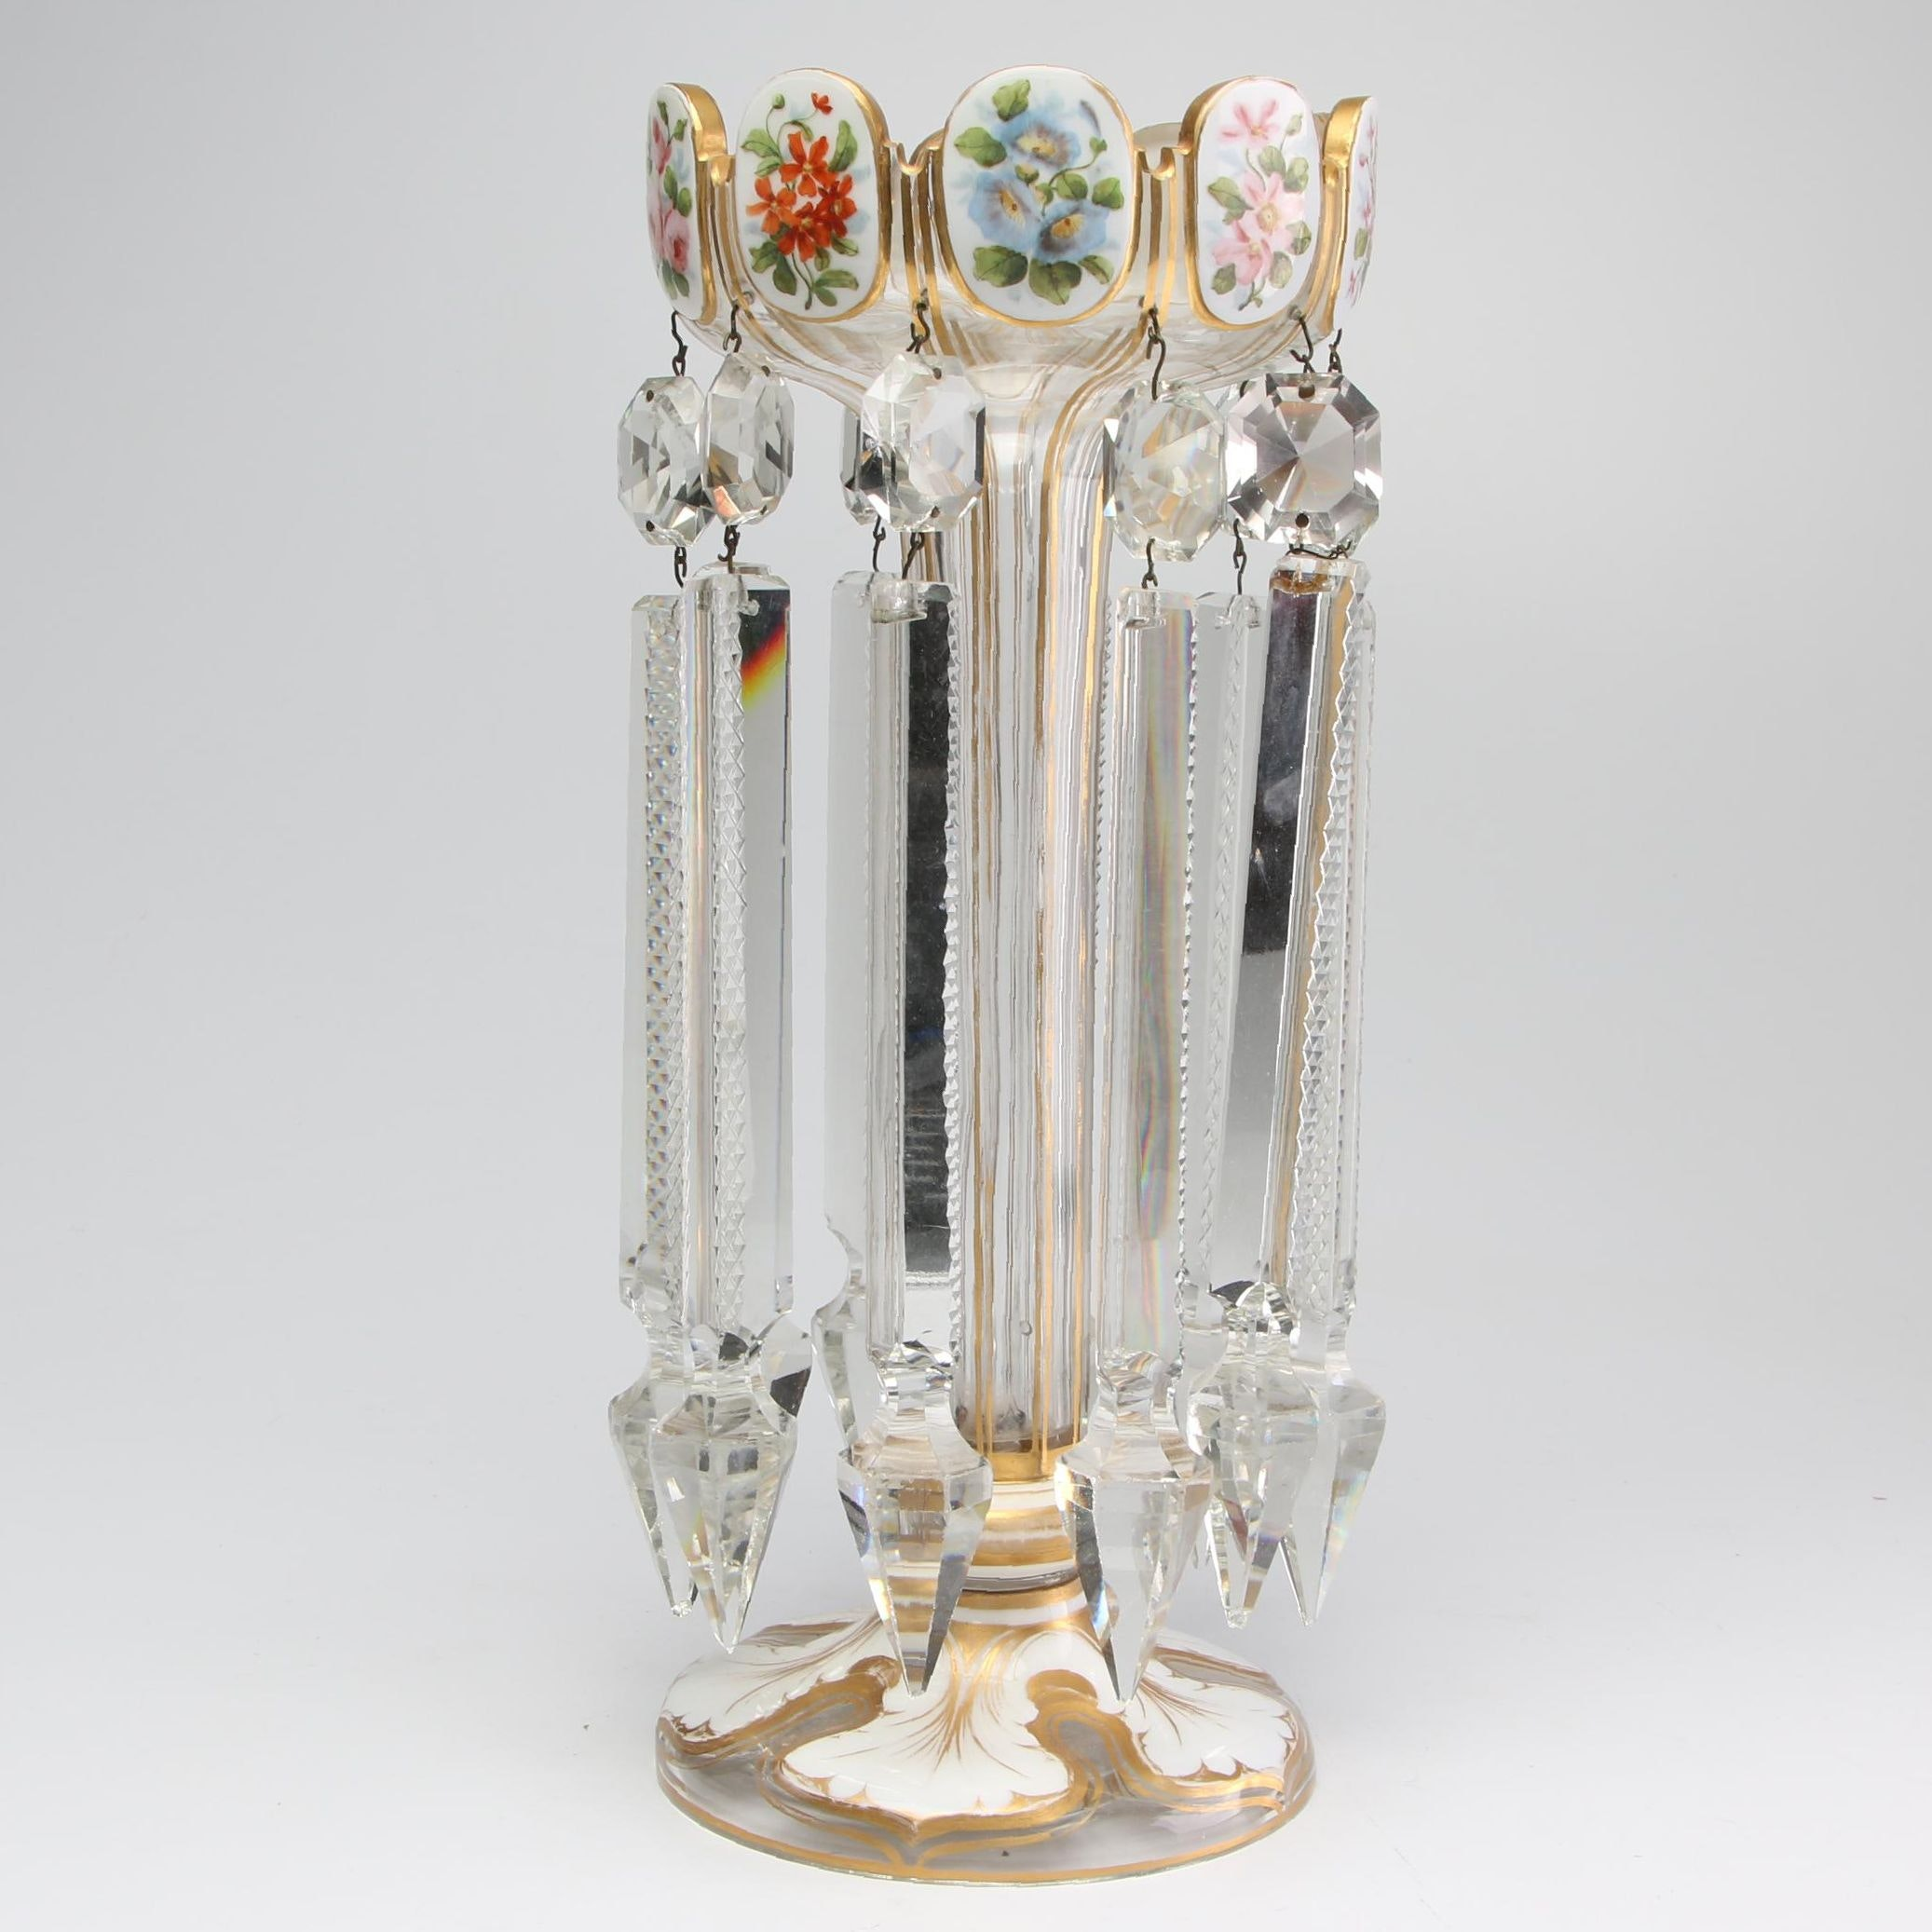 Hand-Painted Crystal Mantel Lustre, Early 20th Century